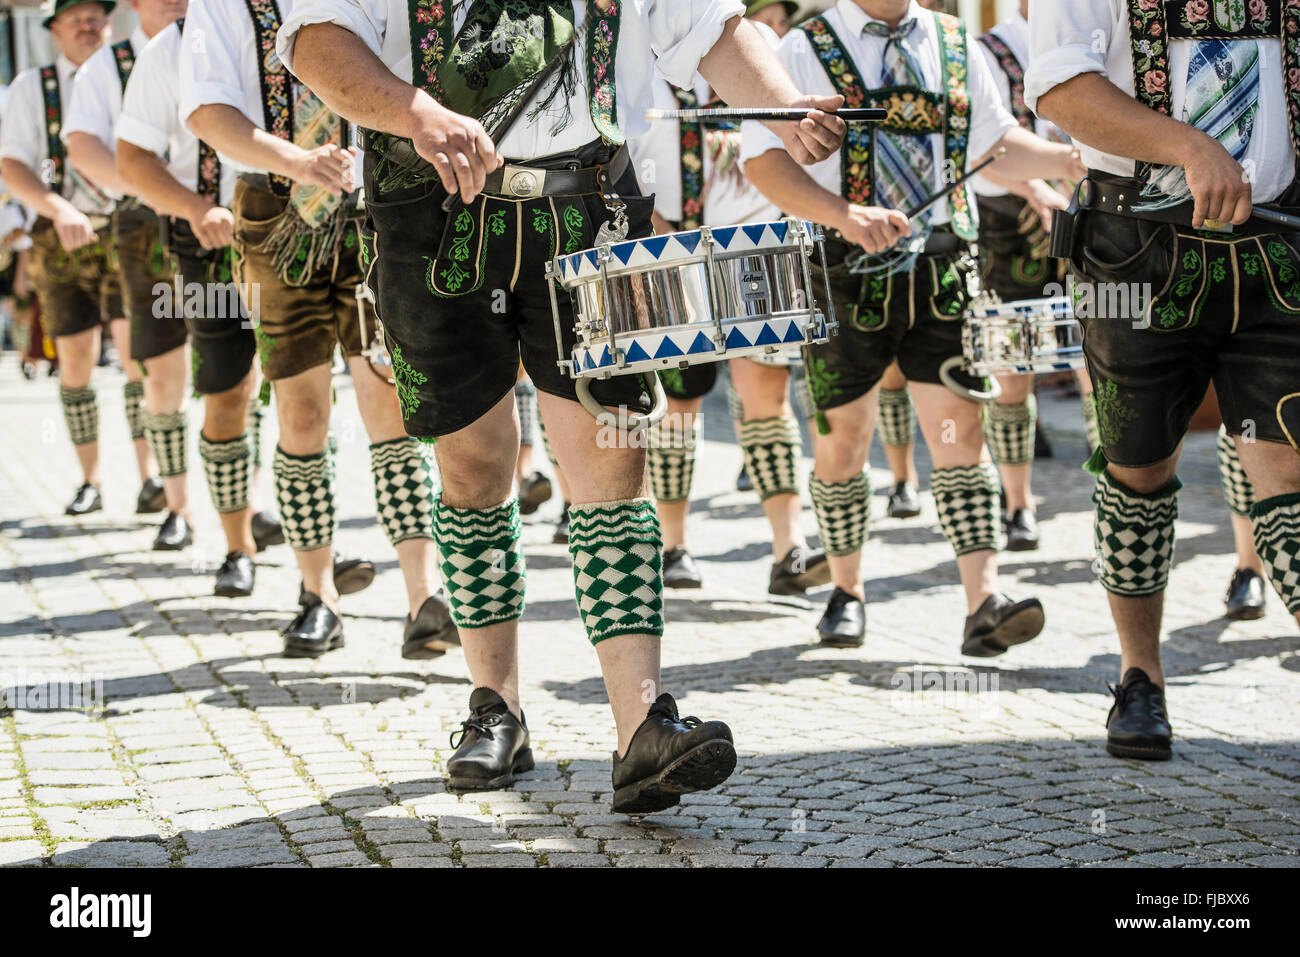 Parade marching band, traditional costume parade, Garmisch-Partenkirchen, Upper Bavaria, Bavaria, Germany - Stock Image